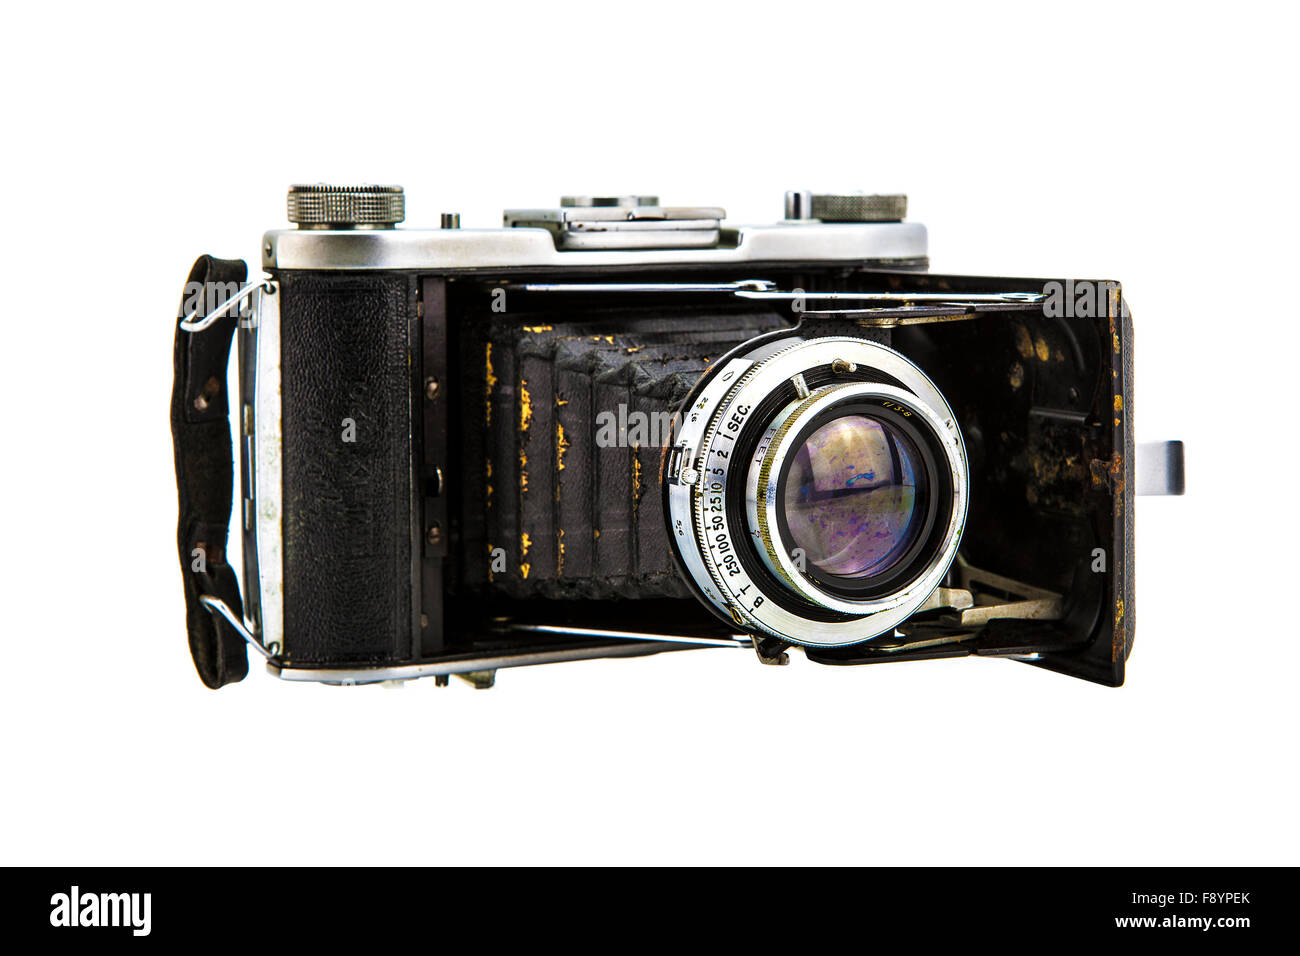 Old well worn vintage film camera on white background - Stock Image